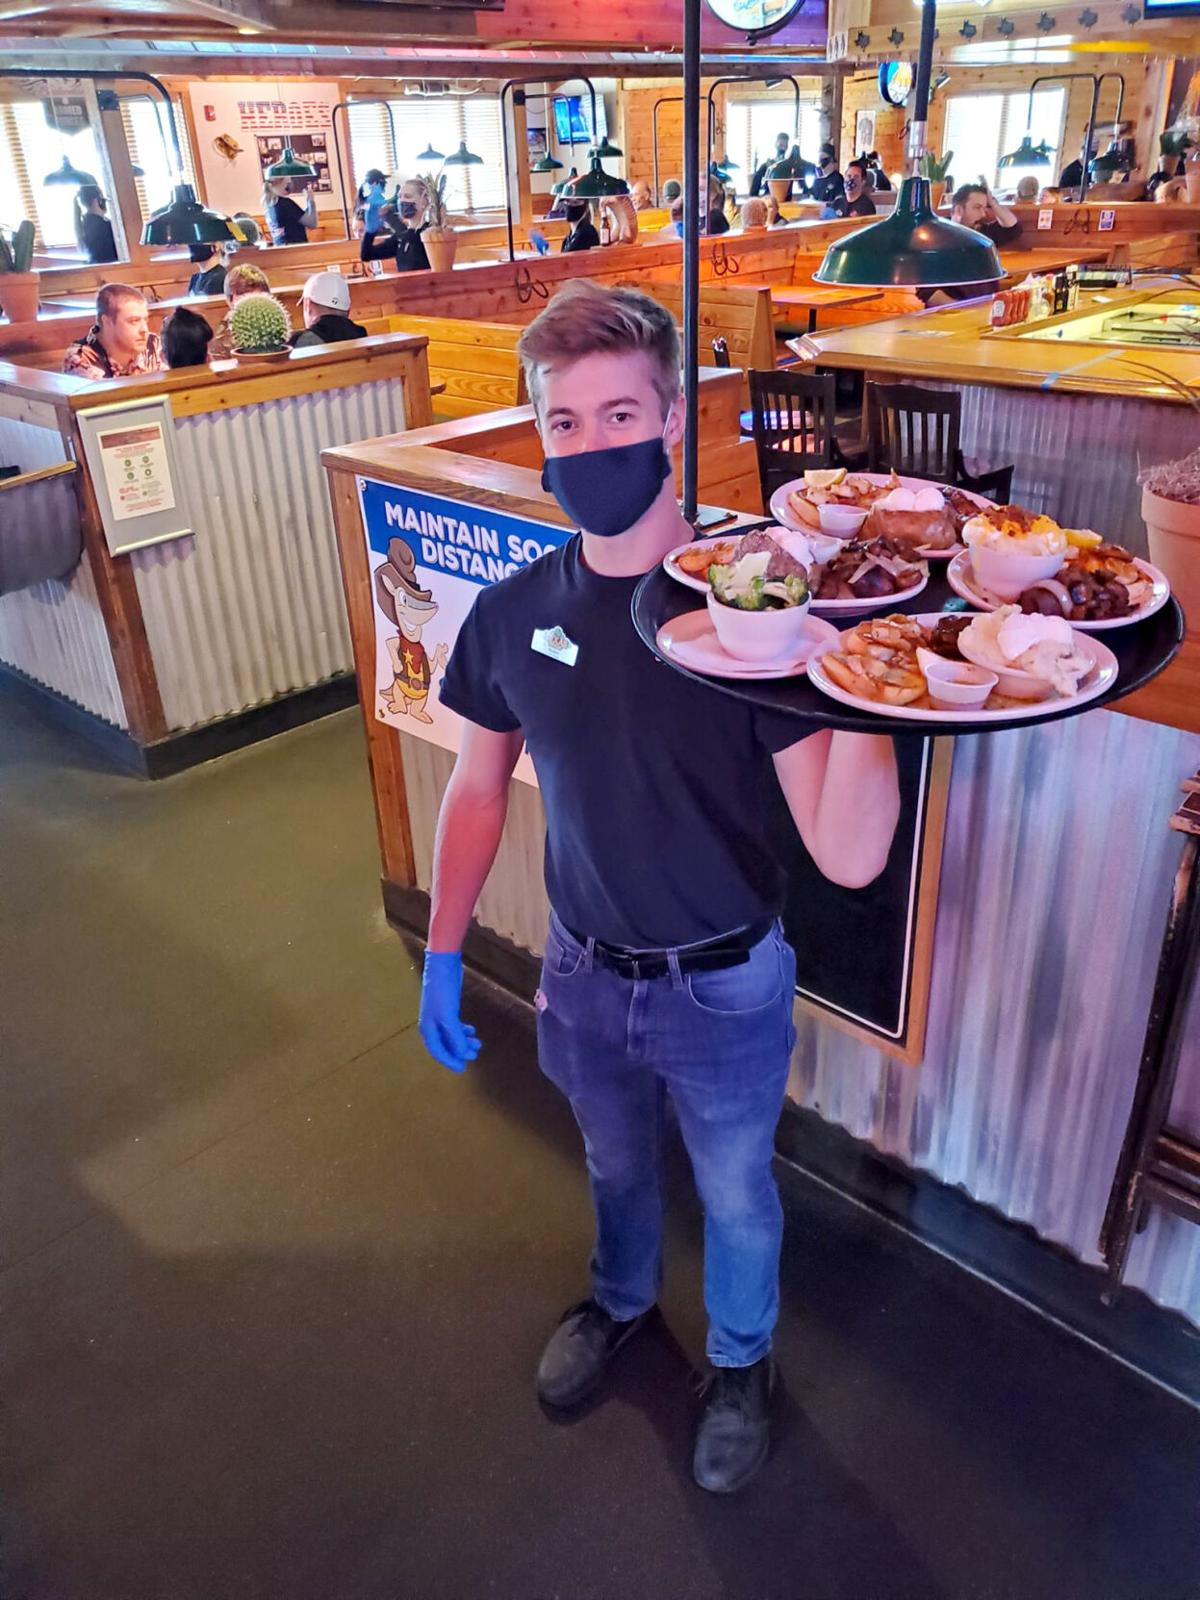 Server holds tray of food - mask.jpg